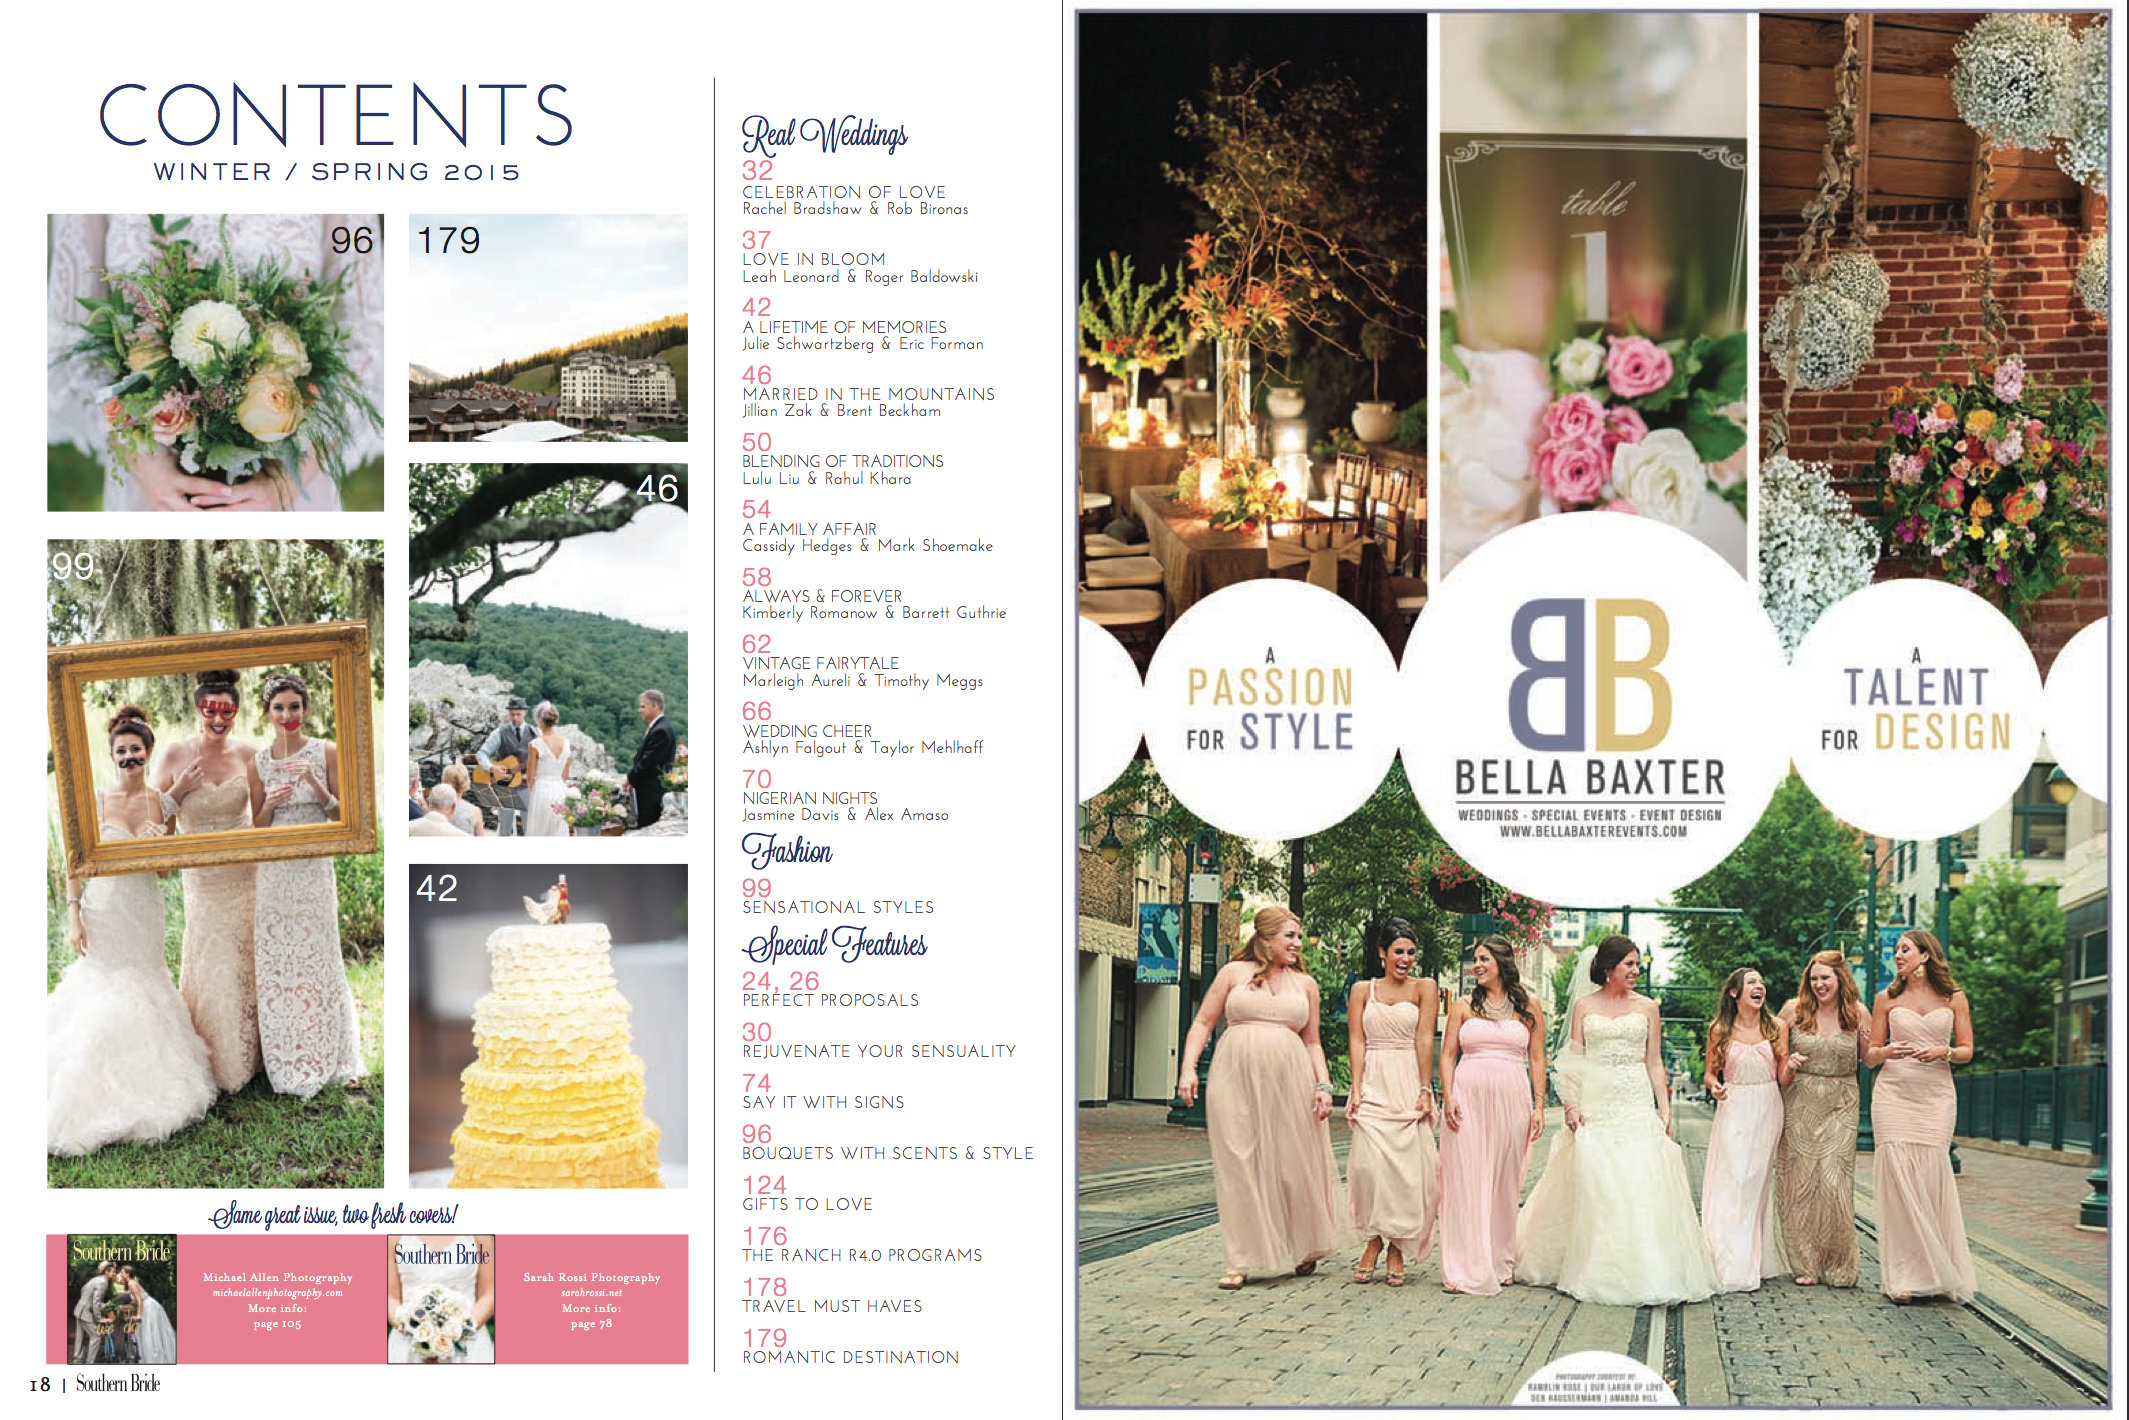 Revival Photography Featured in Southern Bride Magazine 2015 Winter-Spring Issue www.revivalphotography.com